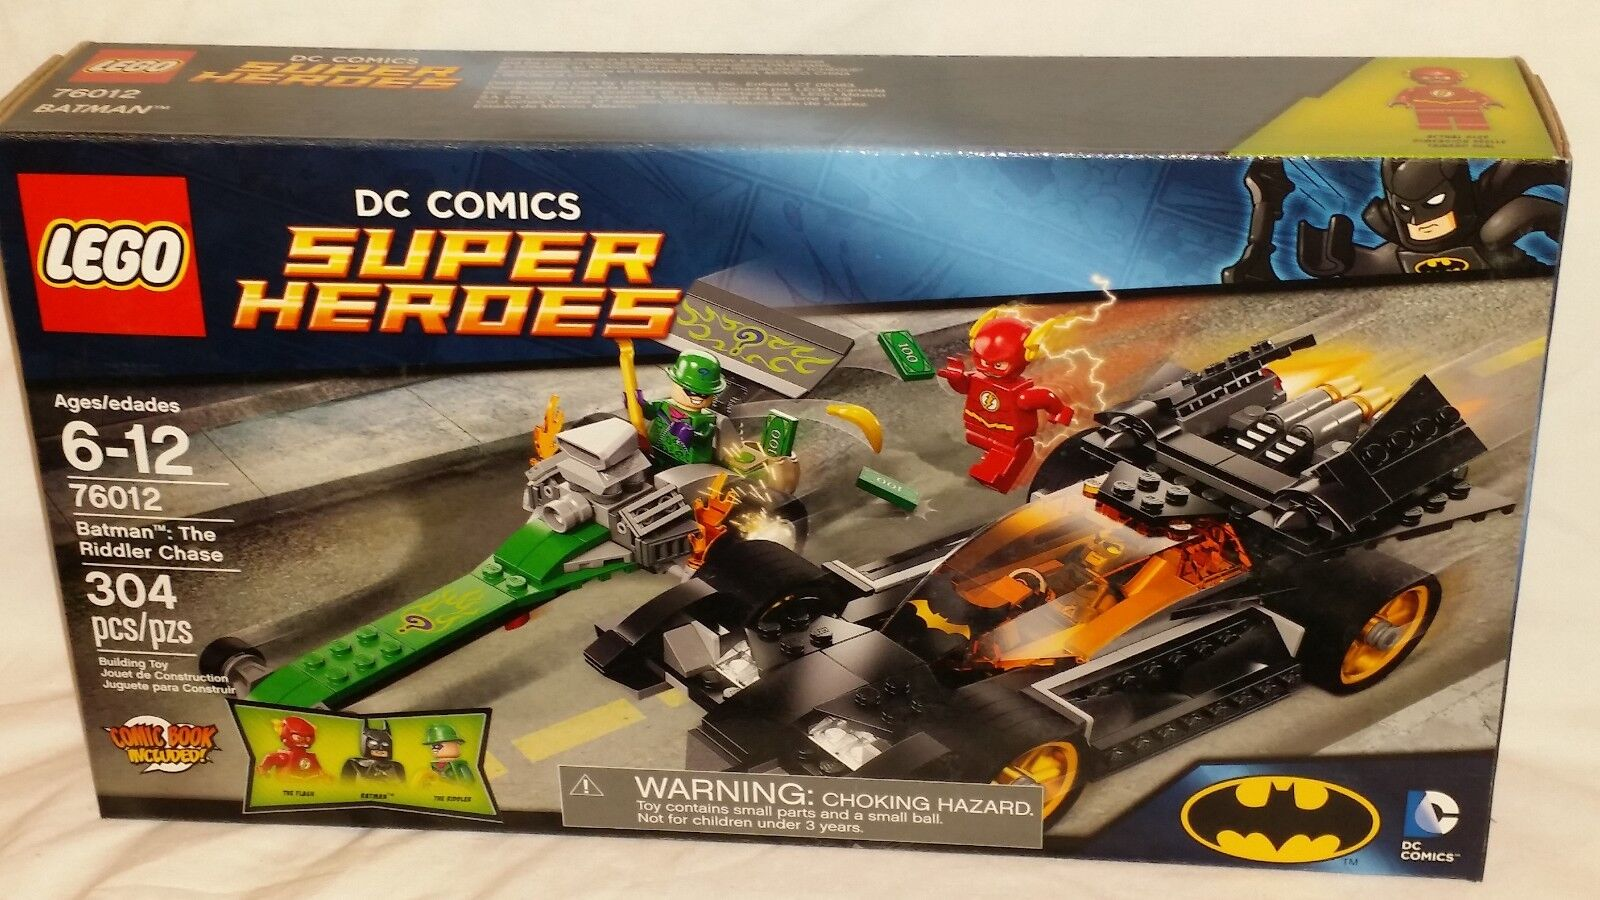 SEALED 76012 LEGO Batman: The Riddler Chase with Batmobile Flash 304 pc RETIROT